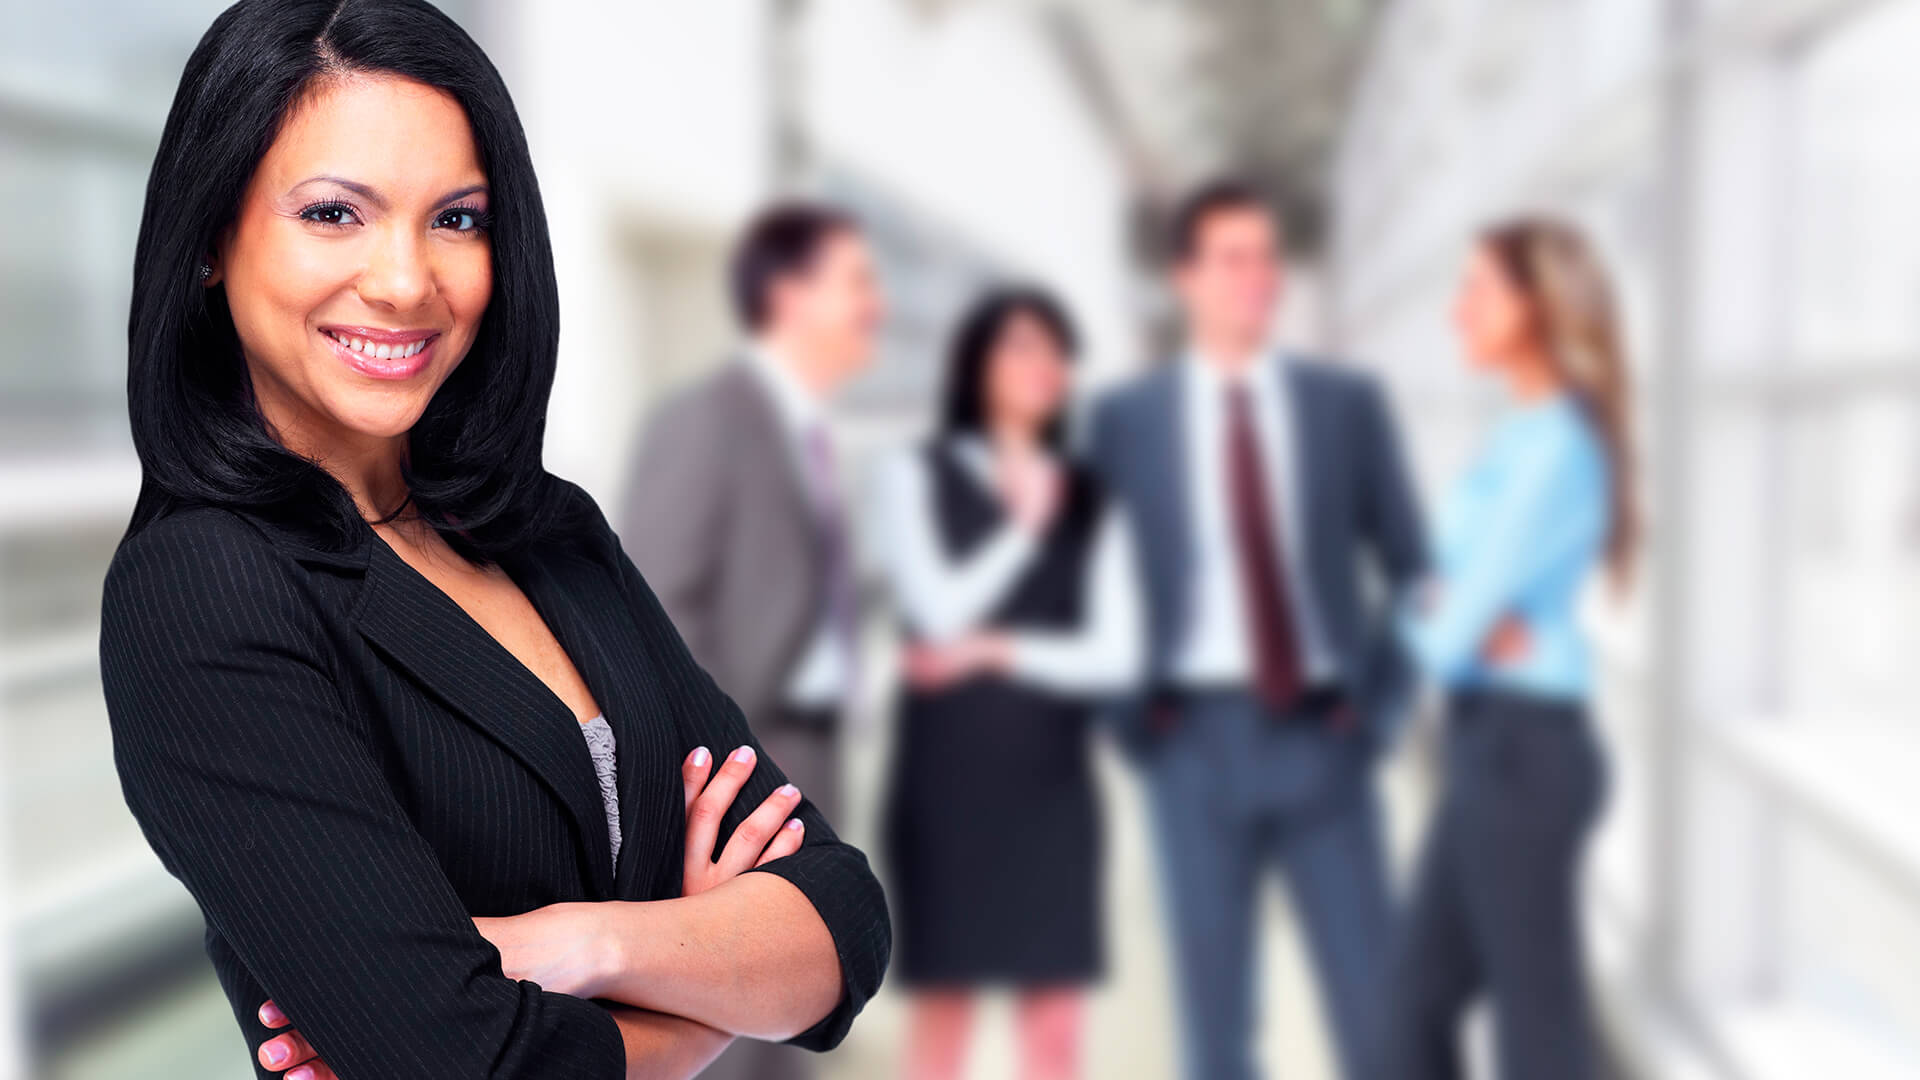 Business woman standing with folded arms.